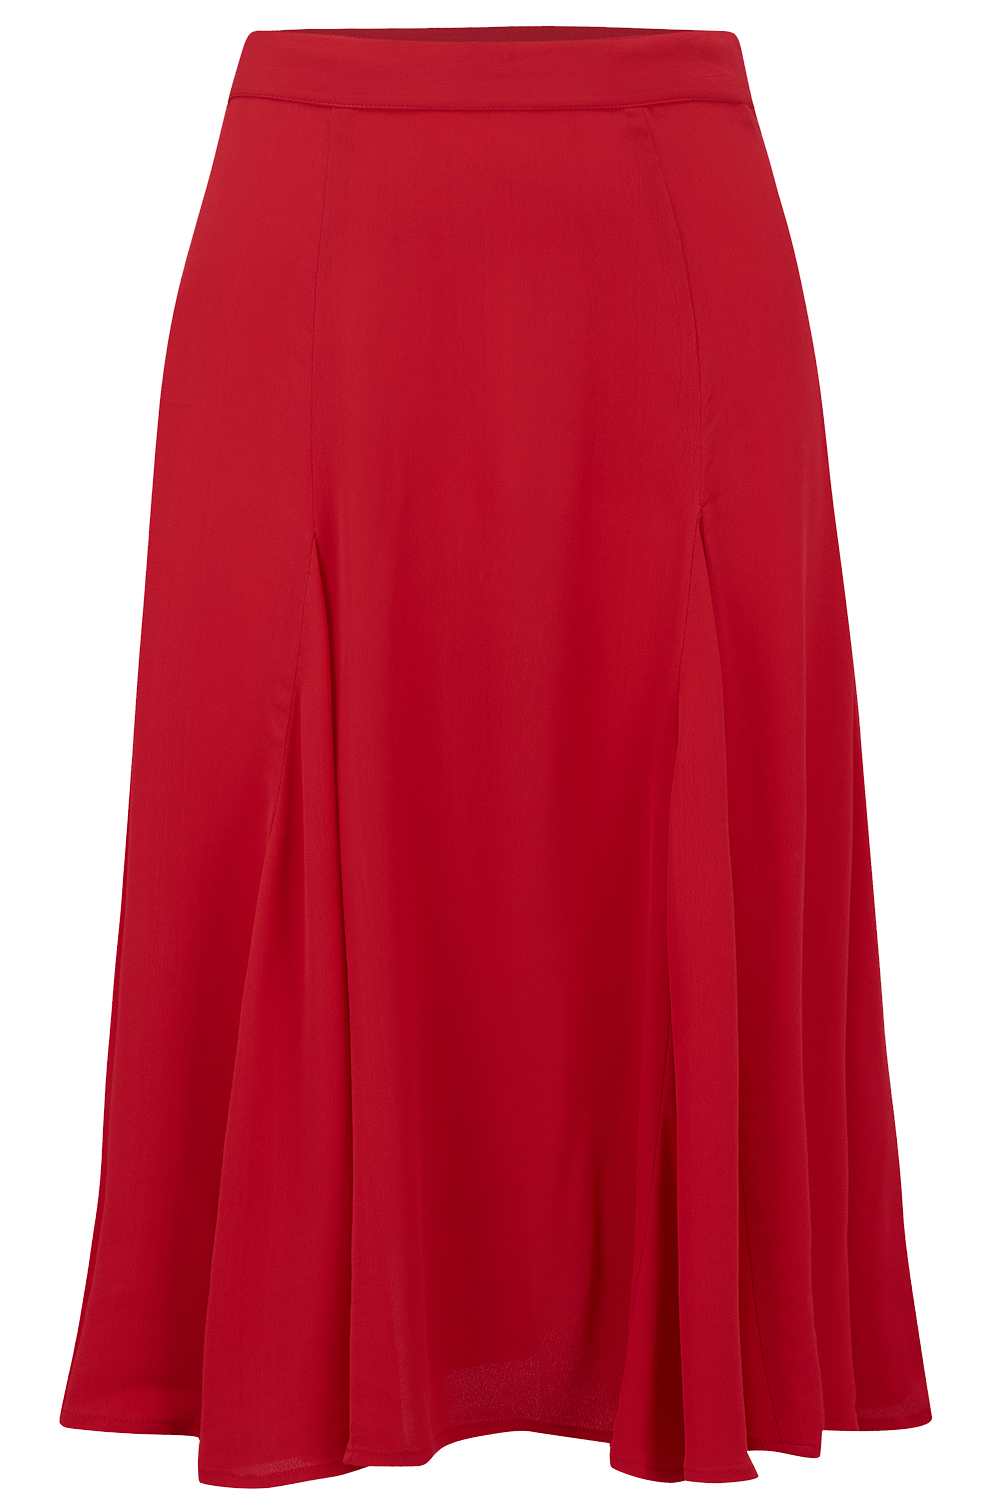 Balboa Skirt in Solid Red, Classic & Authentic 1940s Vintage Inspired Style - RocknRomance True 1940s & 1950s Vintage Style